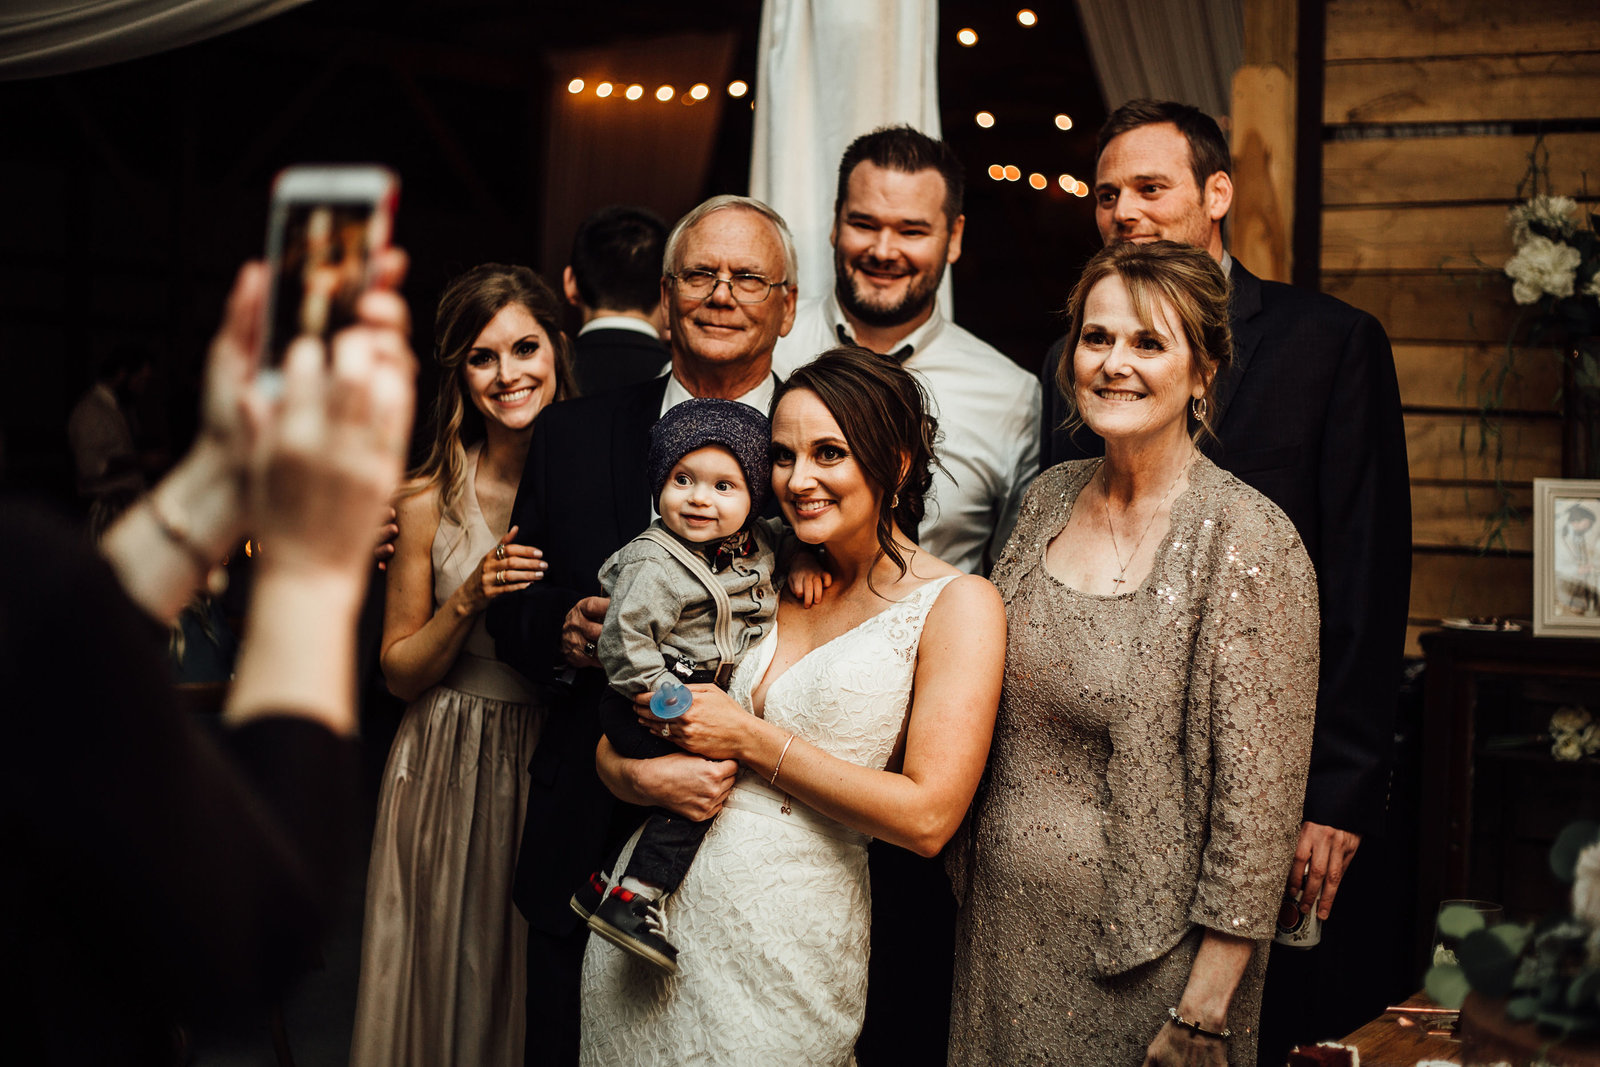 SaraLane-And-Stevie-Wedding-Photography-Jen-Joe-Nashville-Tennessee-LR-378